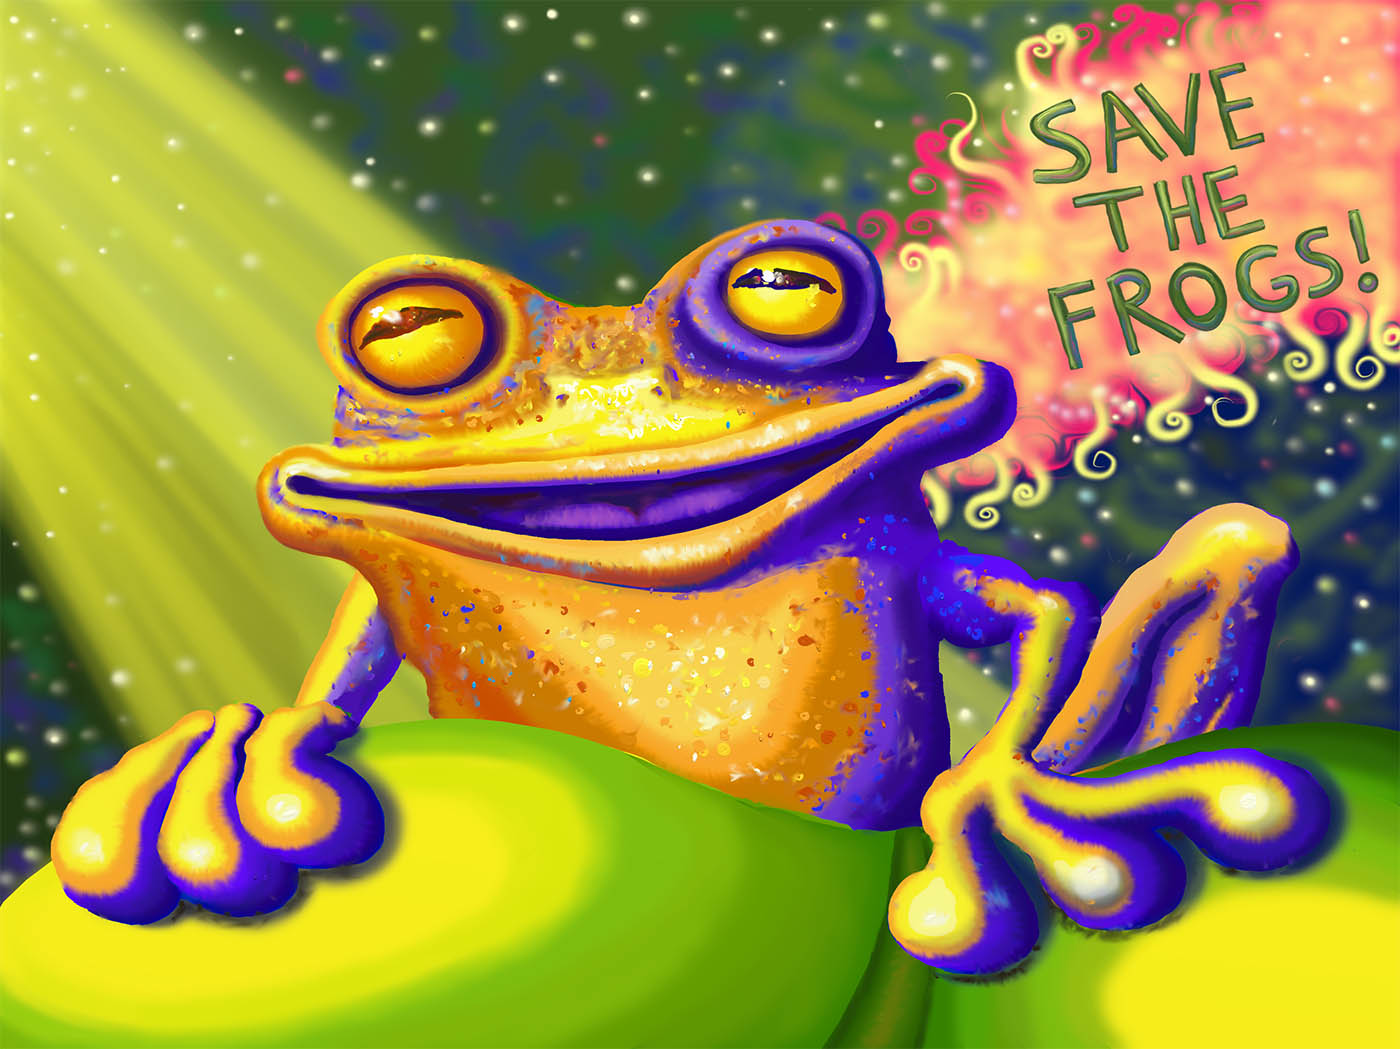 Frog Art by Christine Marsh - 2011 SAVE THE FROGS! Art Contest